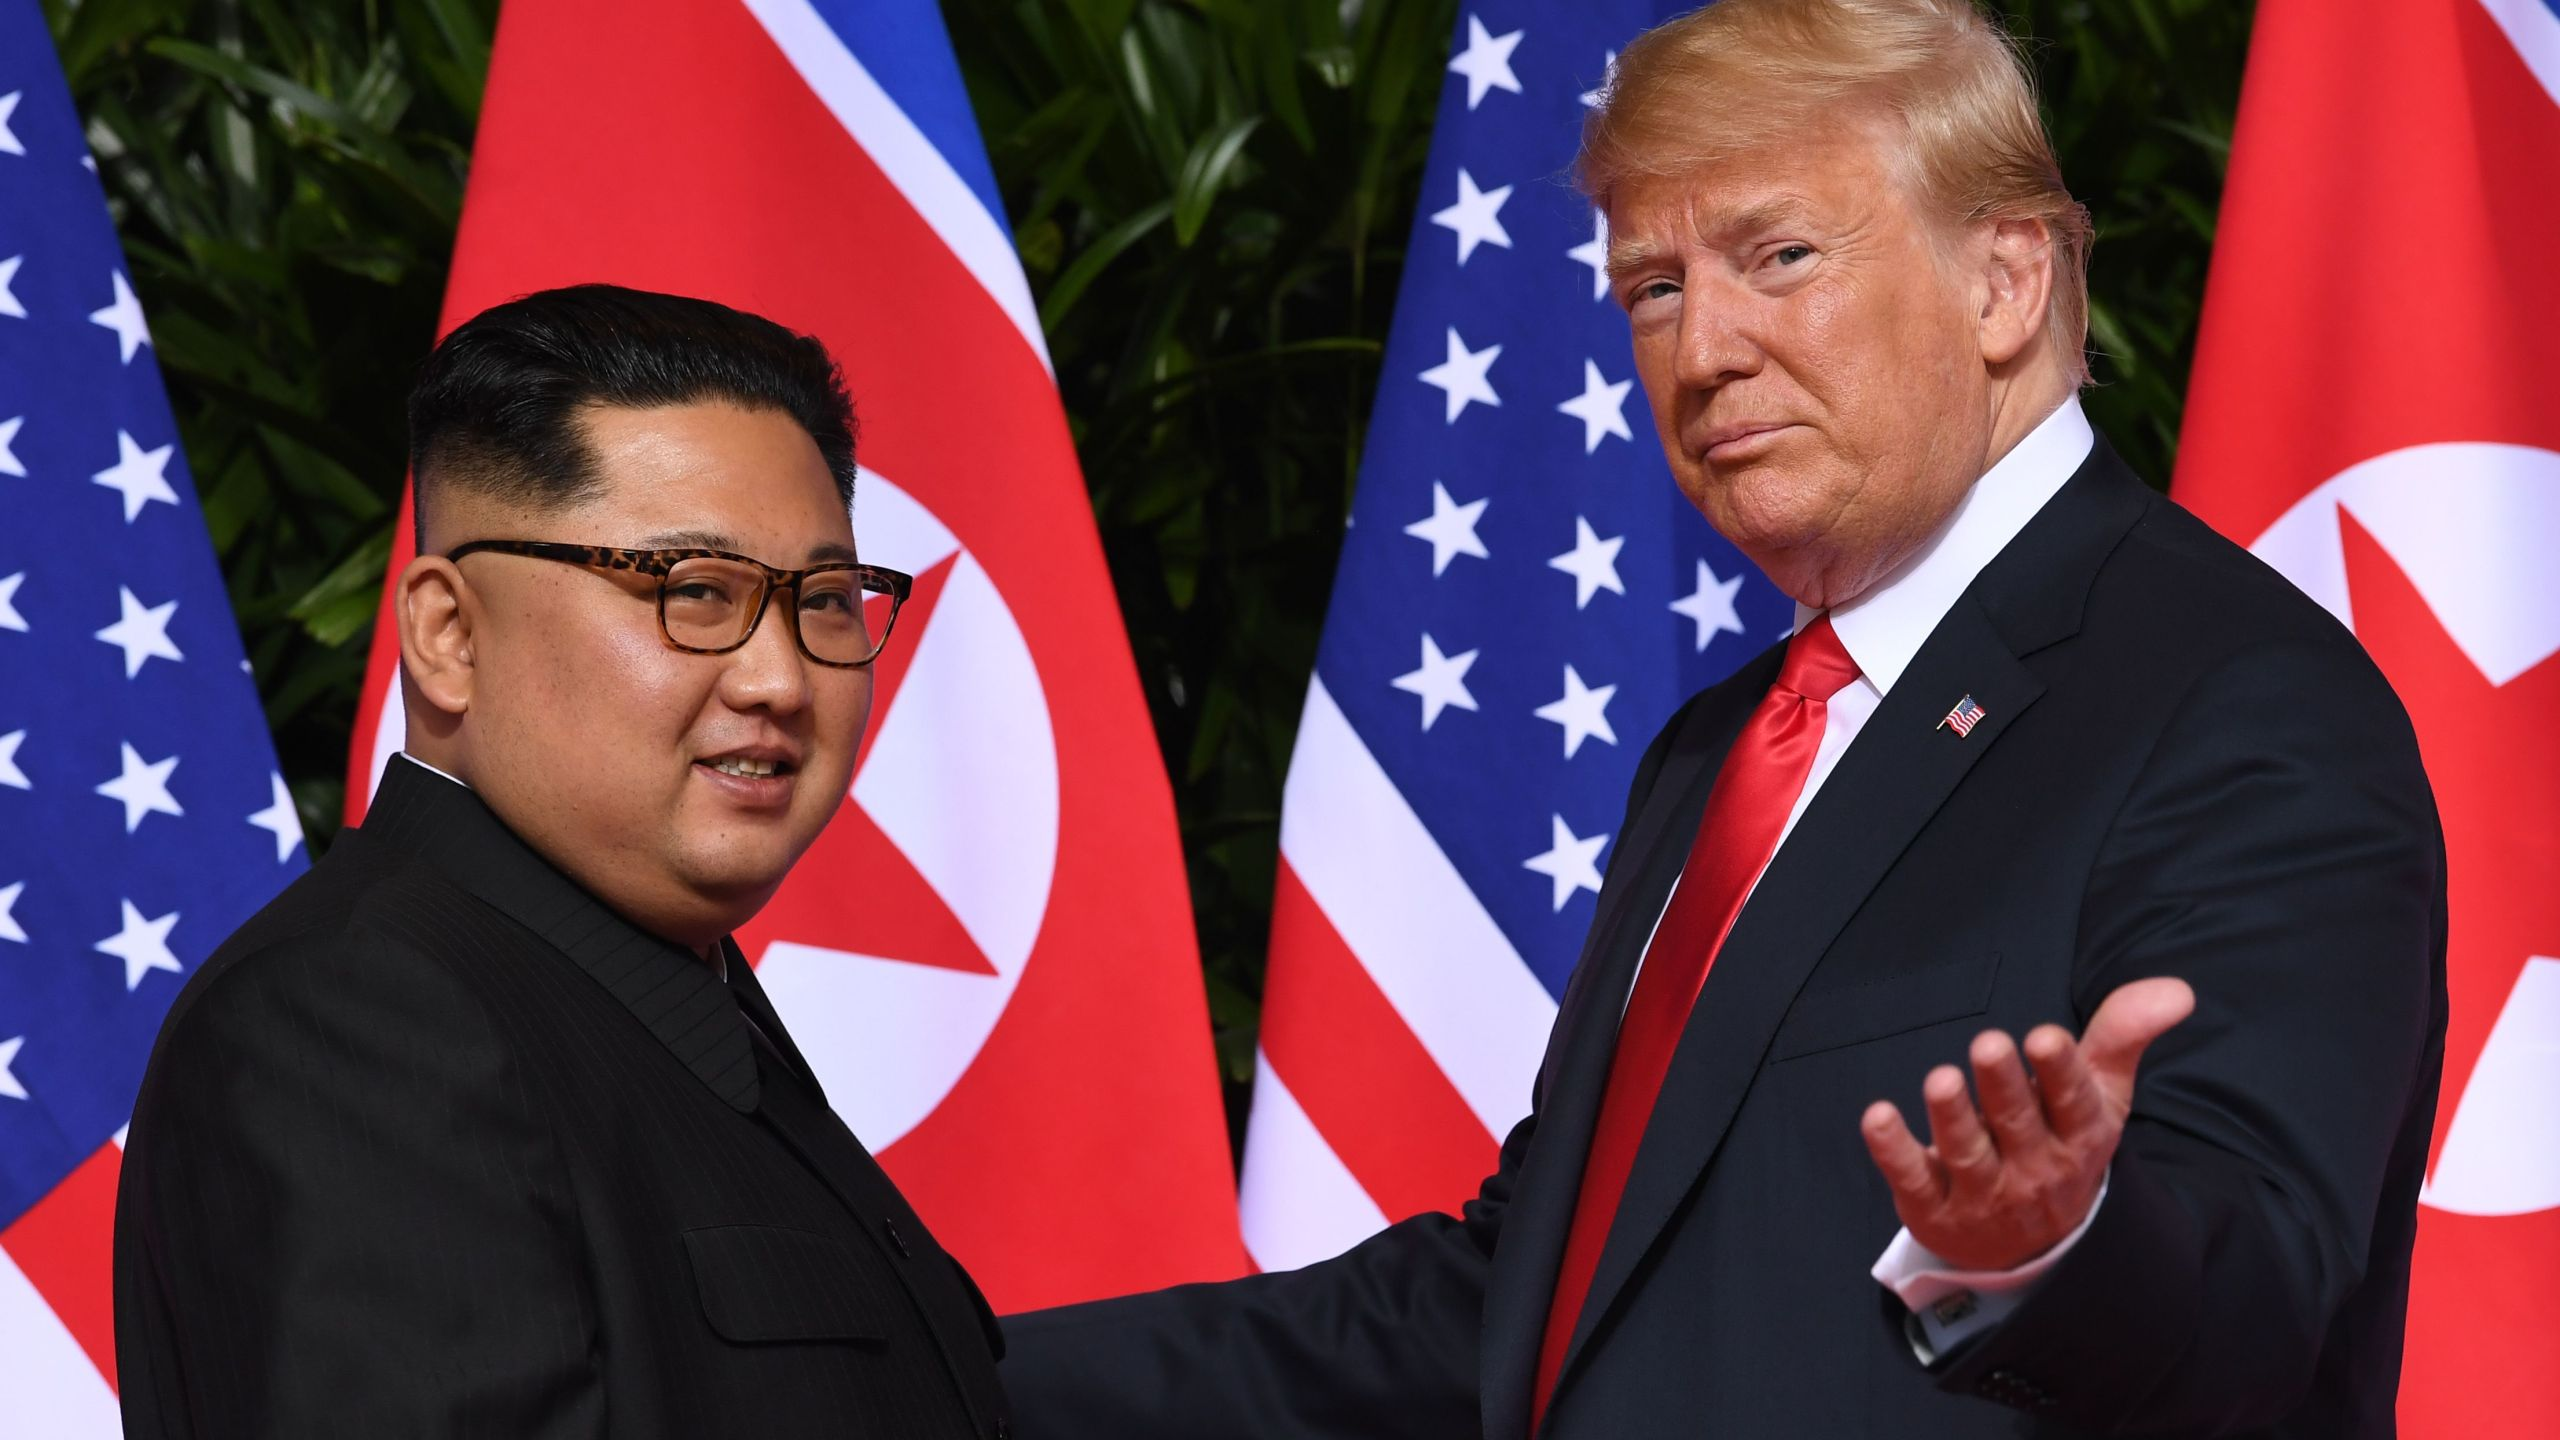 President Donald Trump gestures as he meets with North Korea's leader Kim Jong Un at the start of their historic summit in Singapore on June 12, 2018. (Credit: Saul Loeb / AFP / Getty Images)